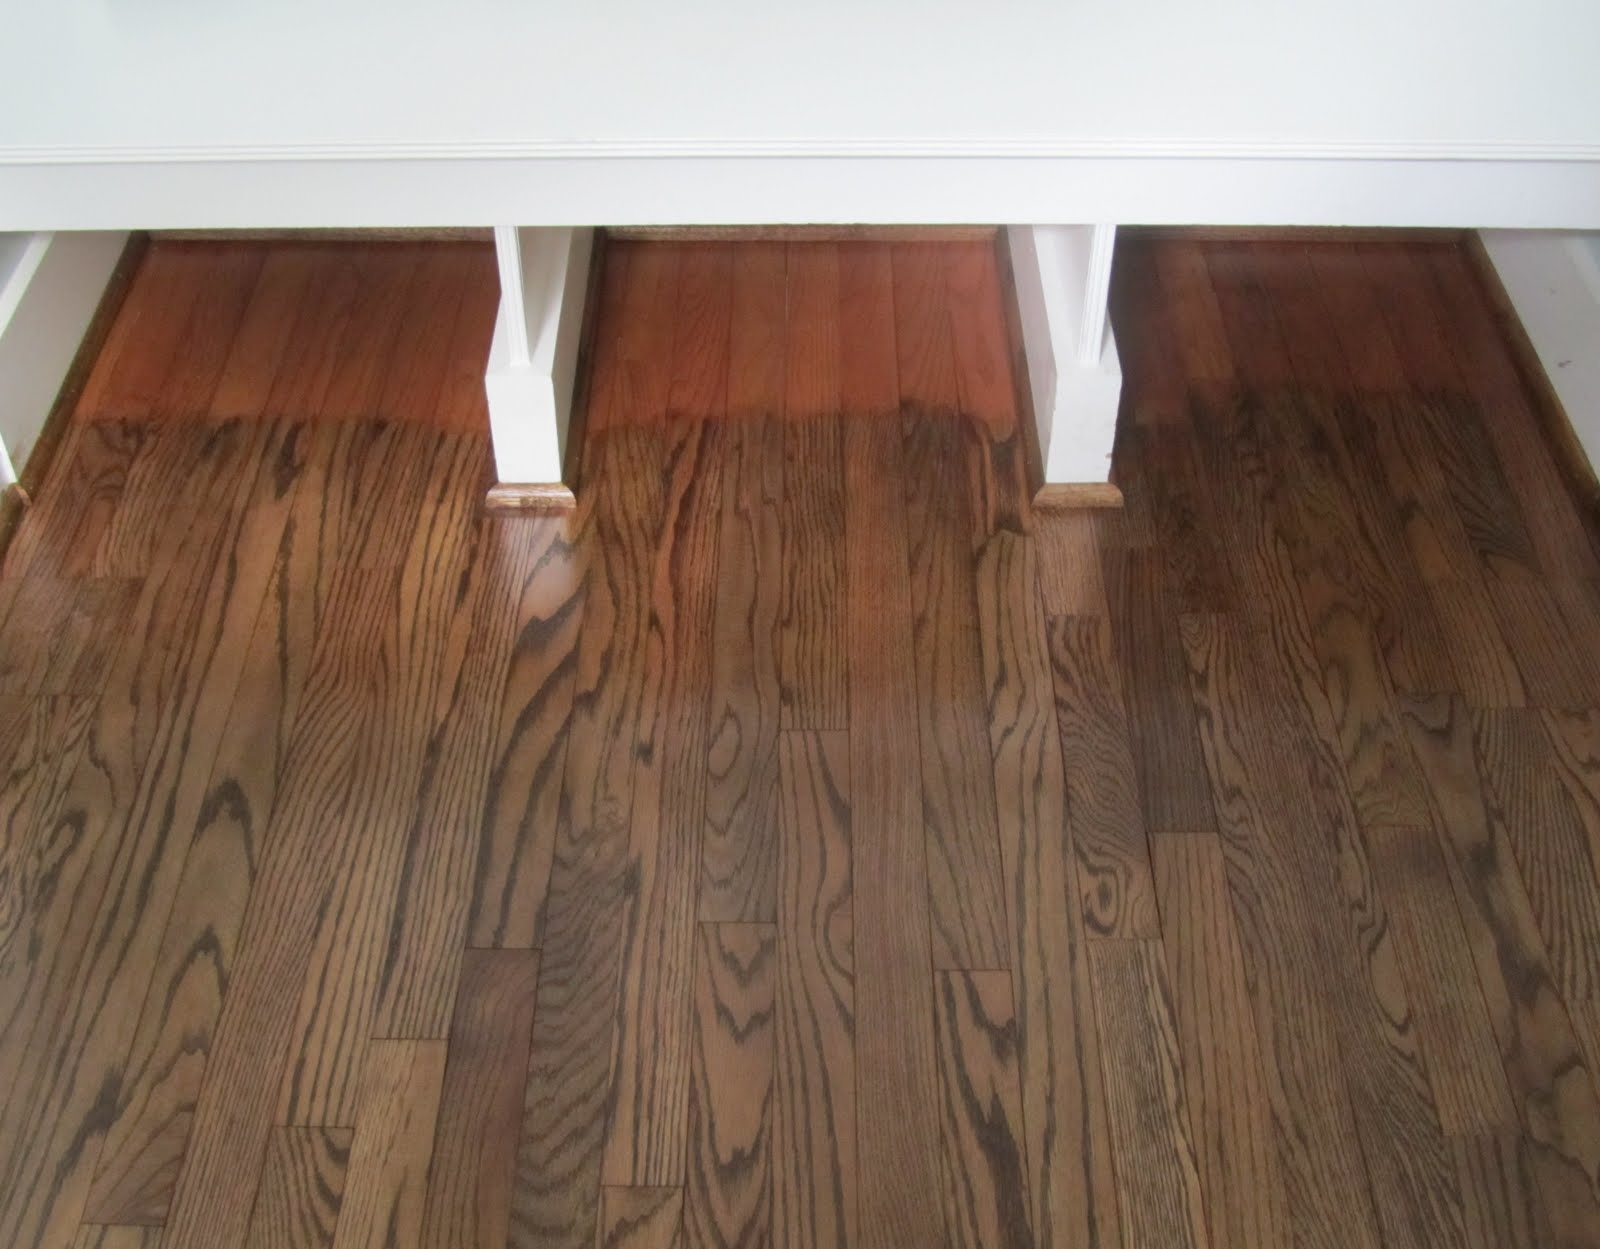 Permalink to Top Wood Floor Colors 2013